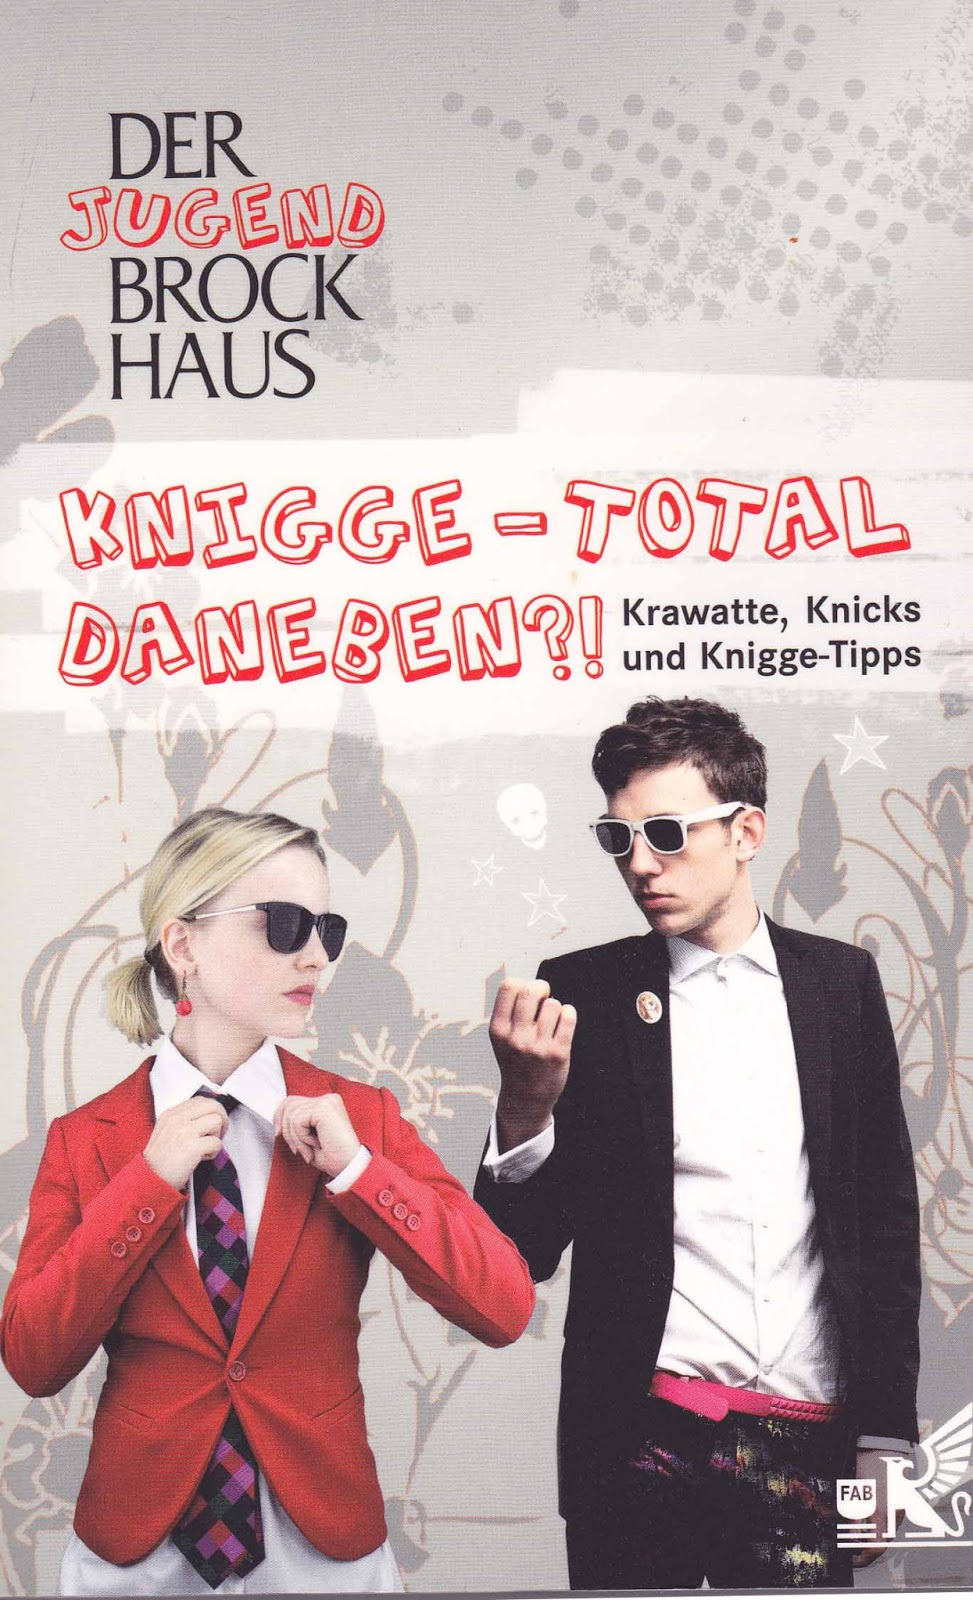 Danjeschkas tests buchrezension knigge total daneben for Knigge besteck